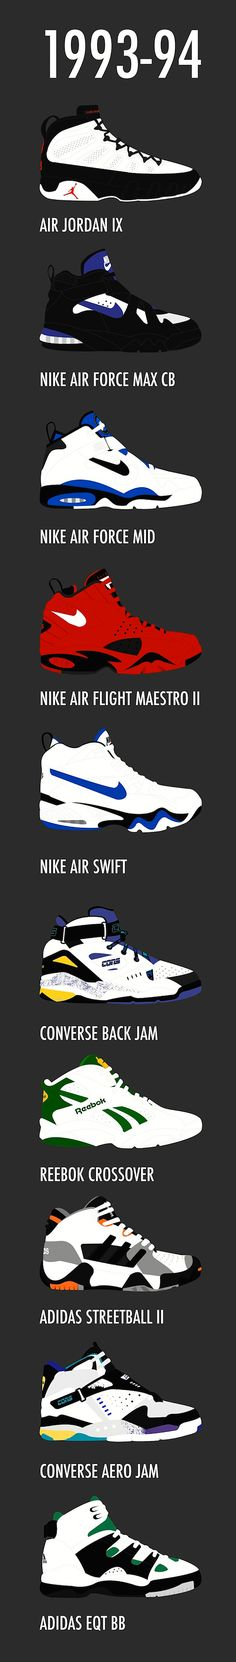 284 Best shoes images in 2019 | Shoes, Sneakers, Sneakers nike